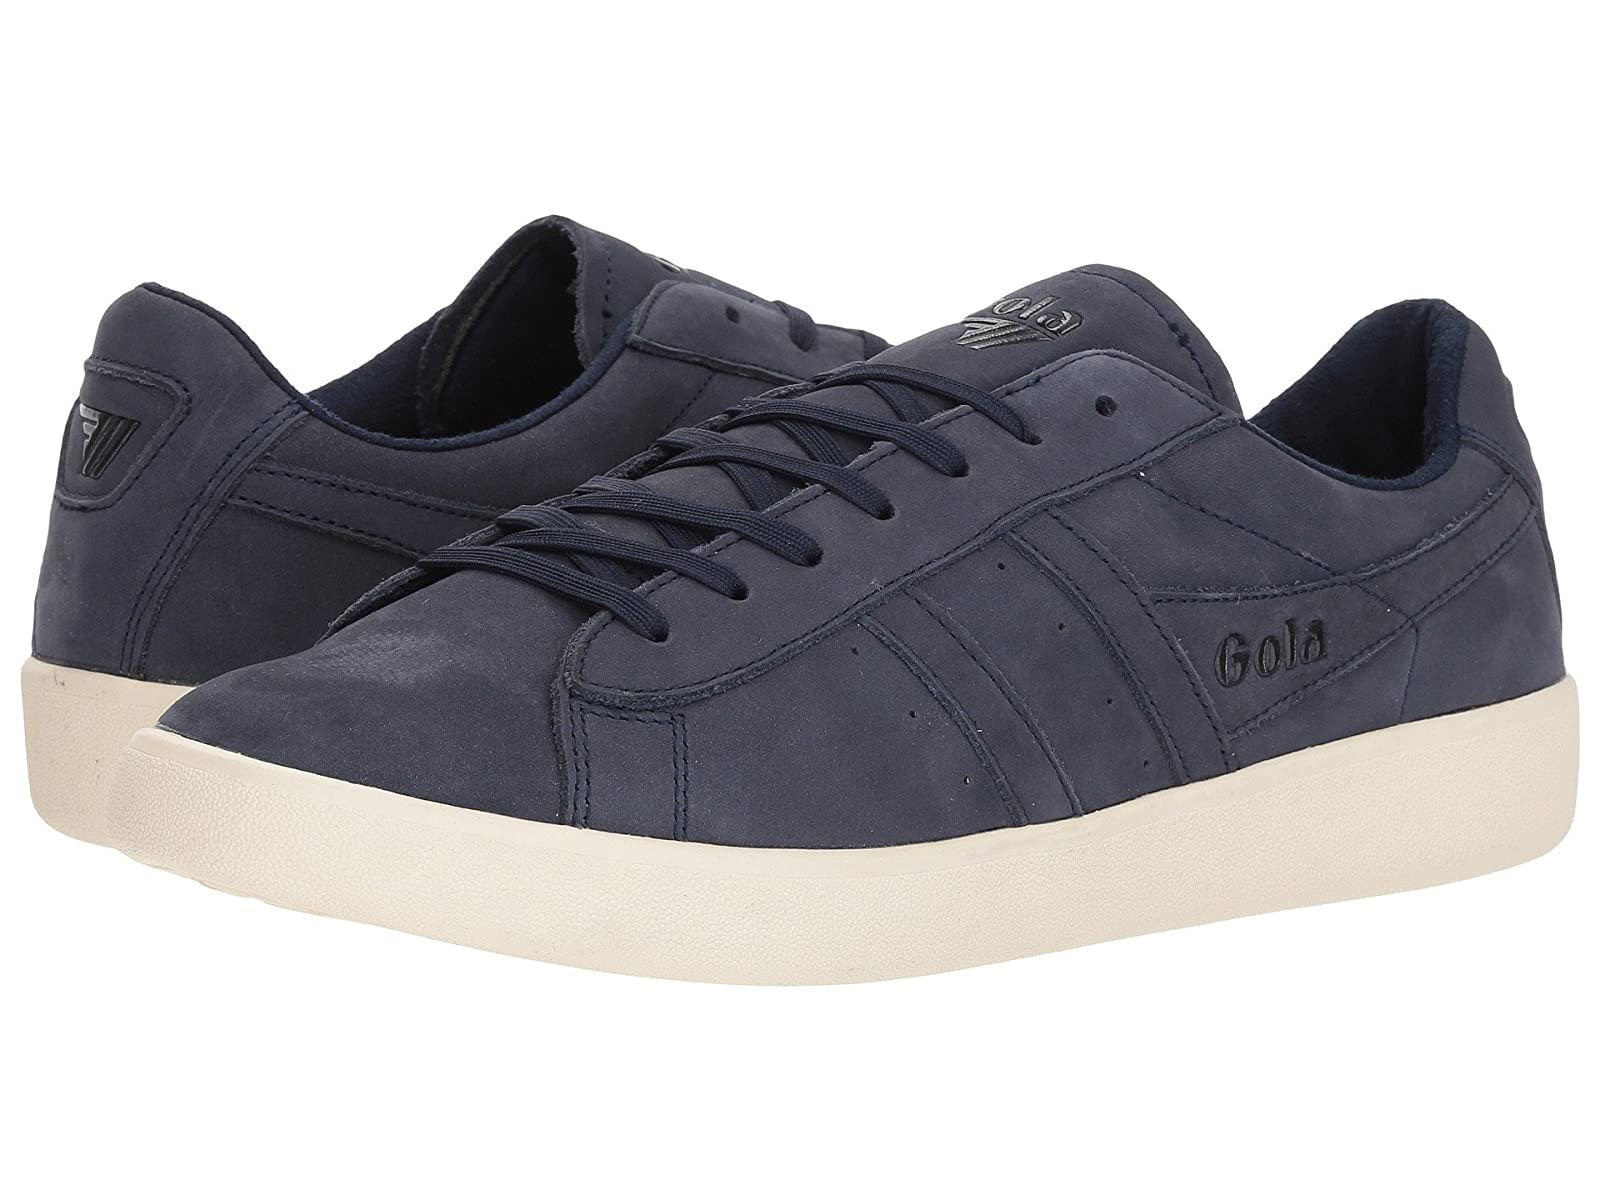 Gola Aztec NubuckAtmospheric grades have affordable shoes